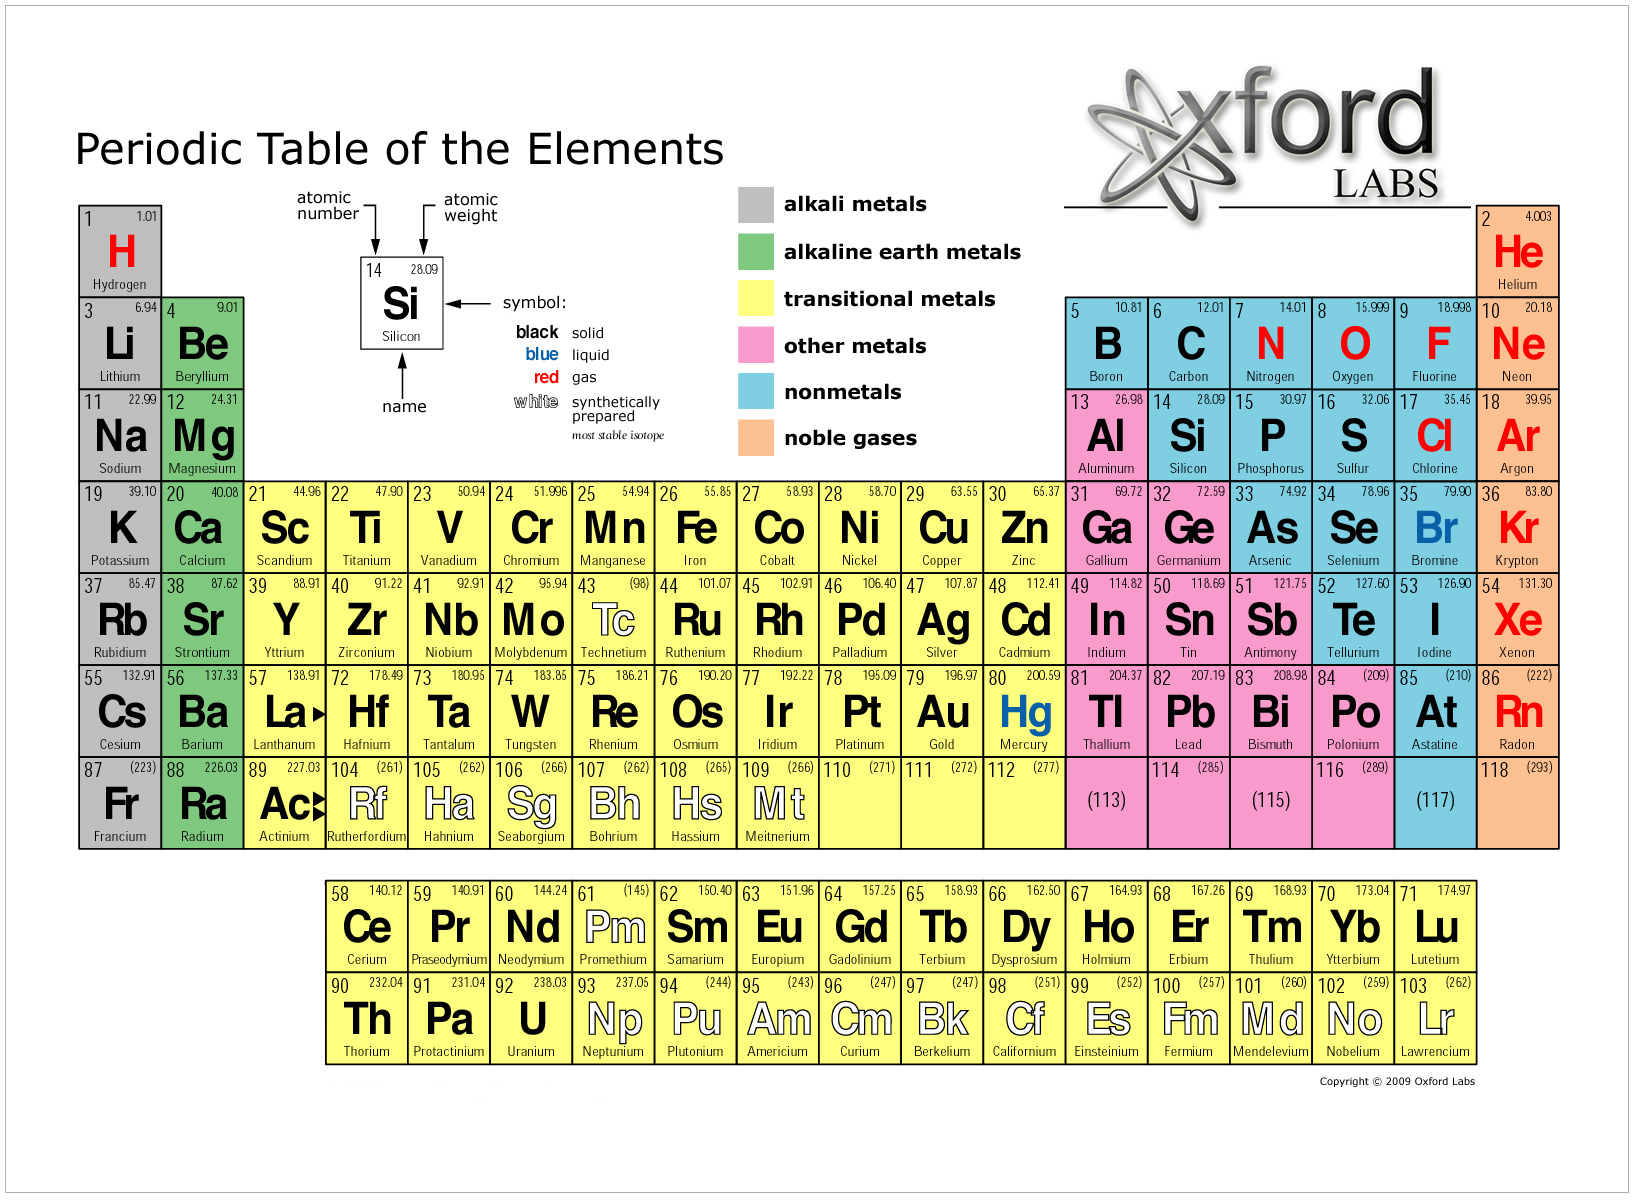 Periodic table compound image collections periodic table images mccall science licensed for non commercial use only difference mccall science licensed for non commercial use gamestrikefo Image collections